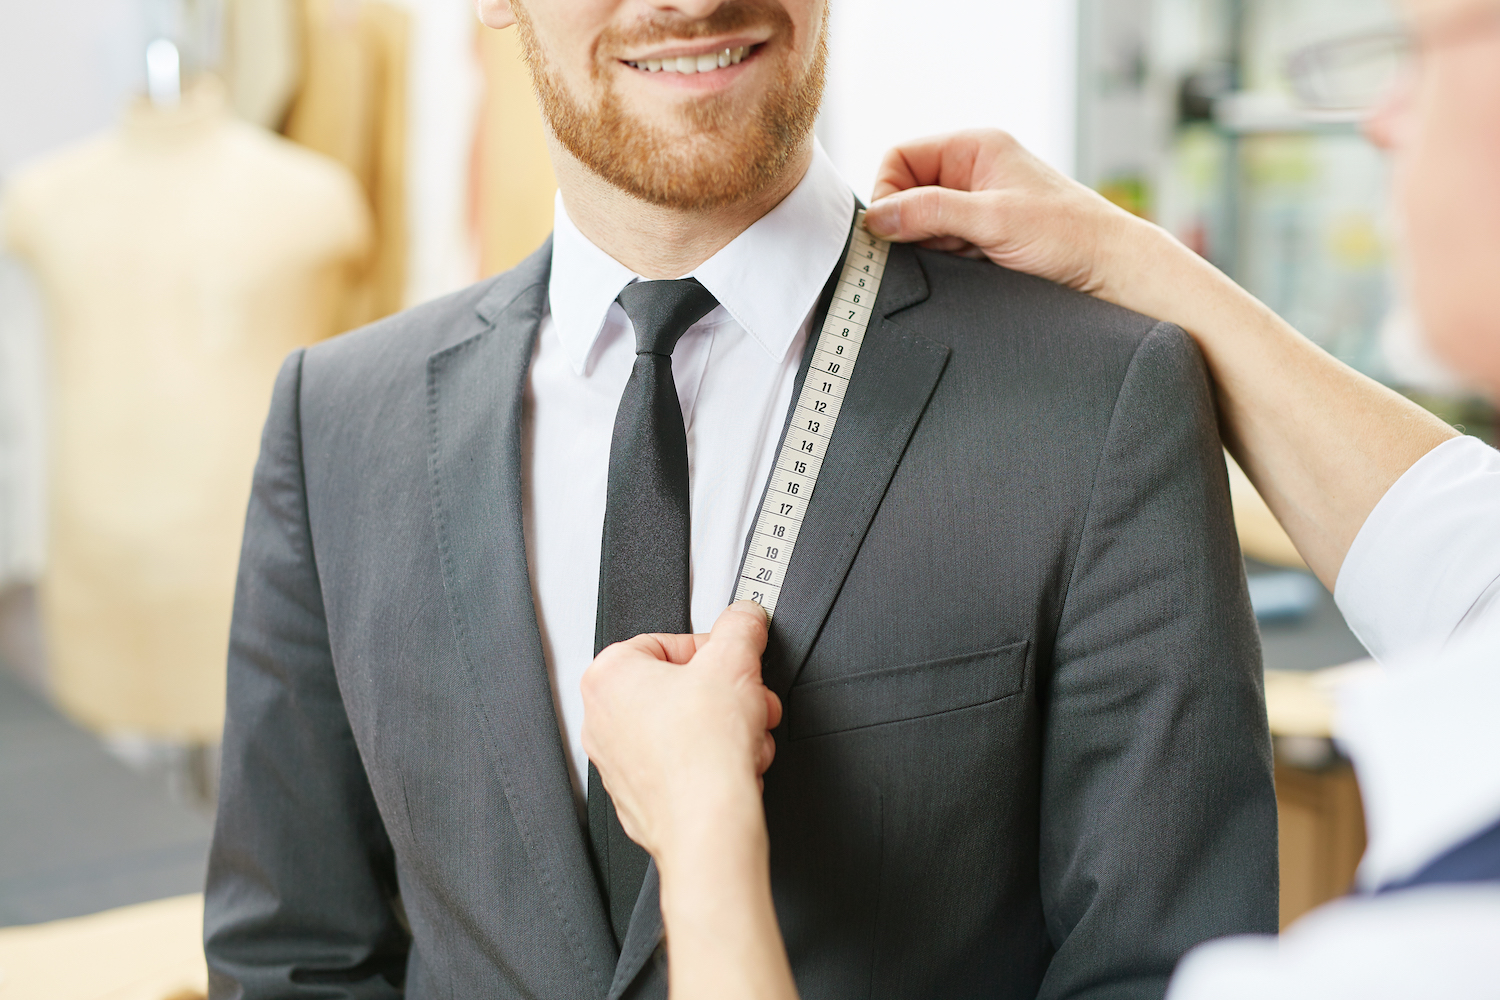 8 Best Tailors In Bangkok That You Can Trust - KAYAK SG